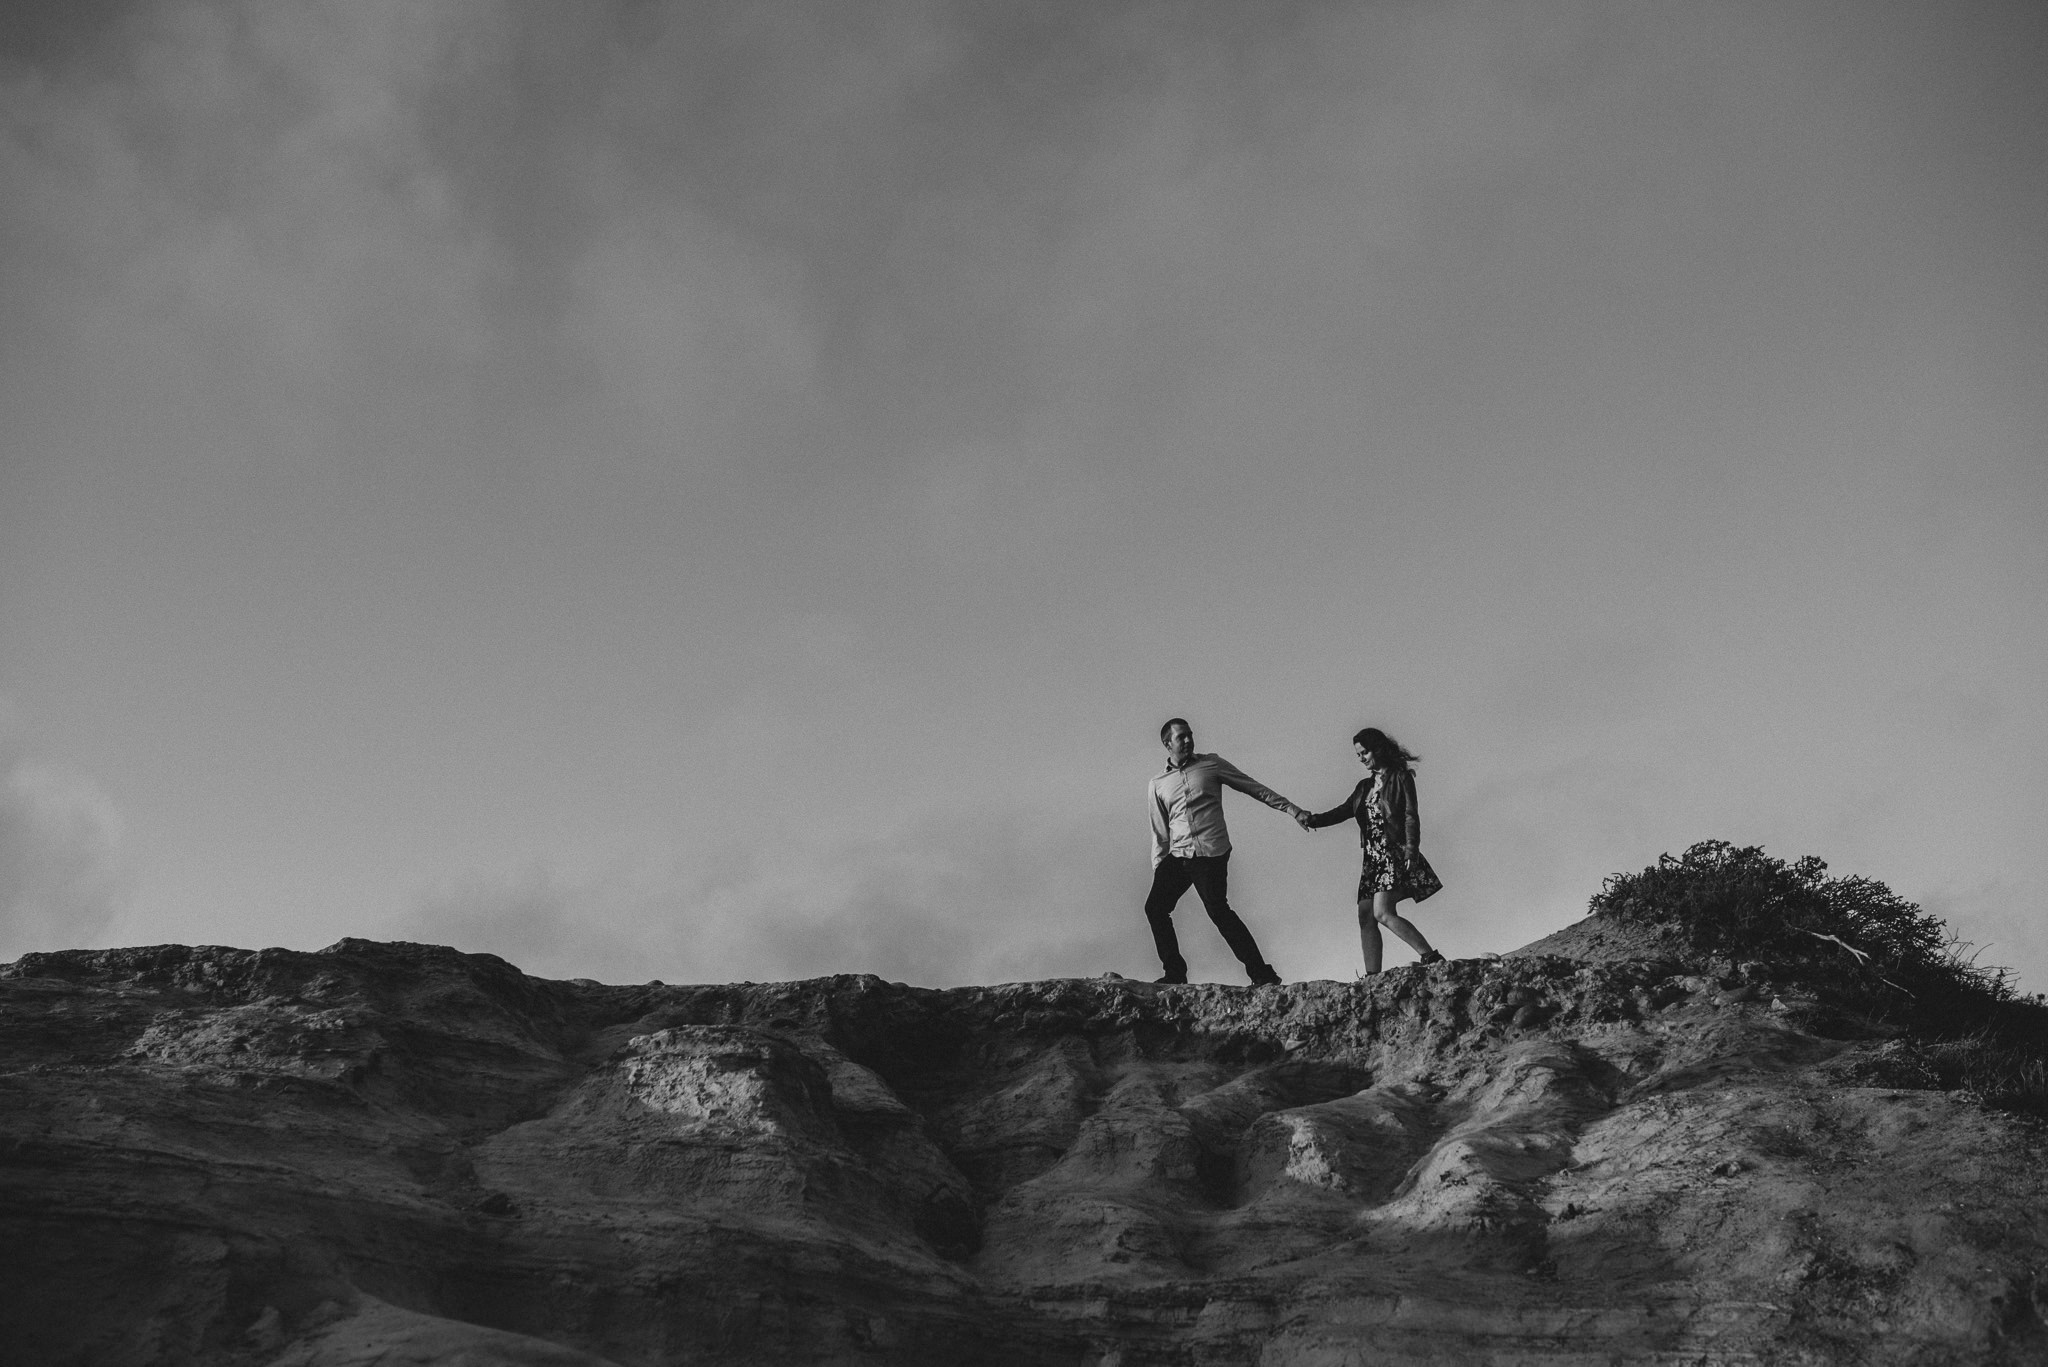 A man leads his fiancé across the jagged ridge line high above the cliffs at Torrey Pines State Reserve.